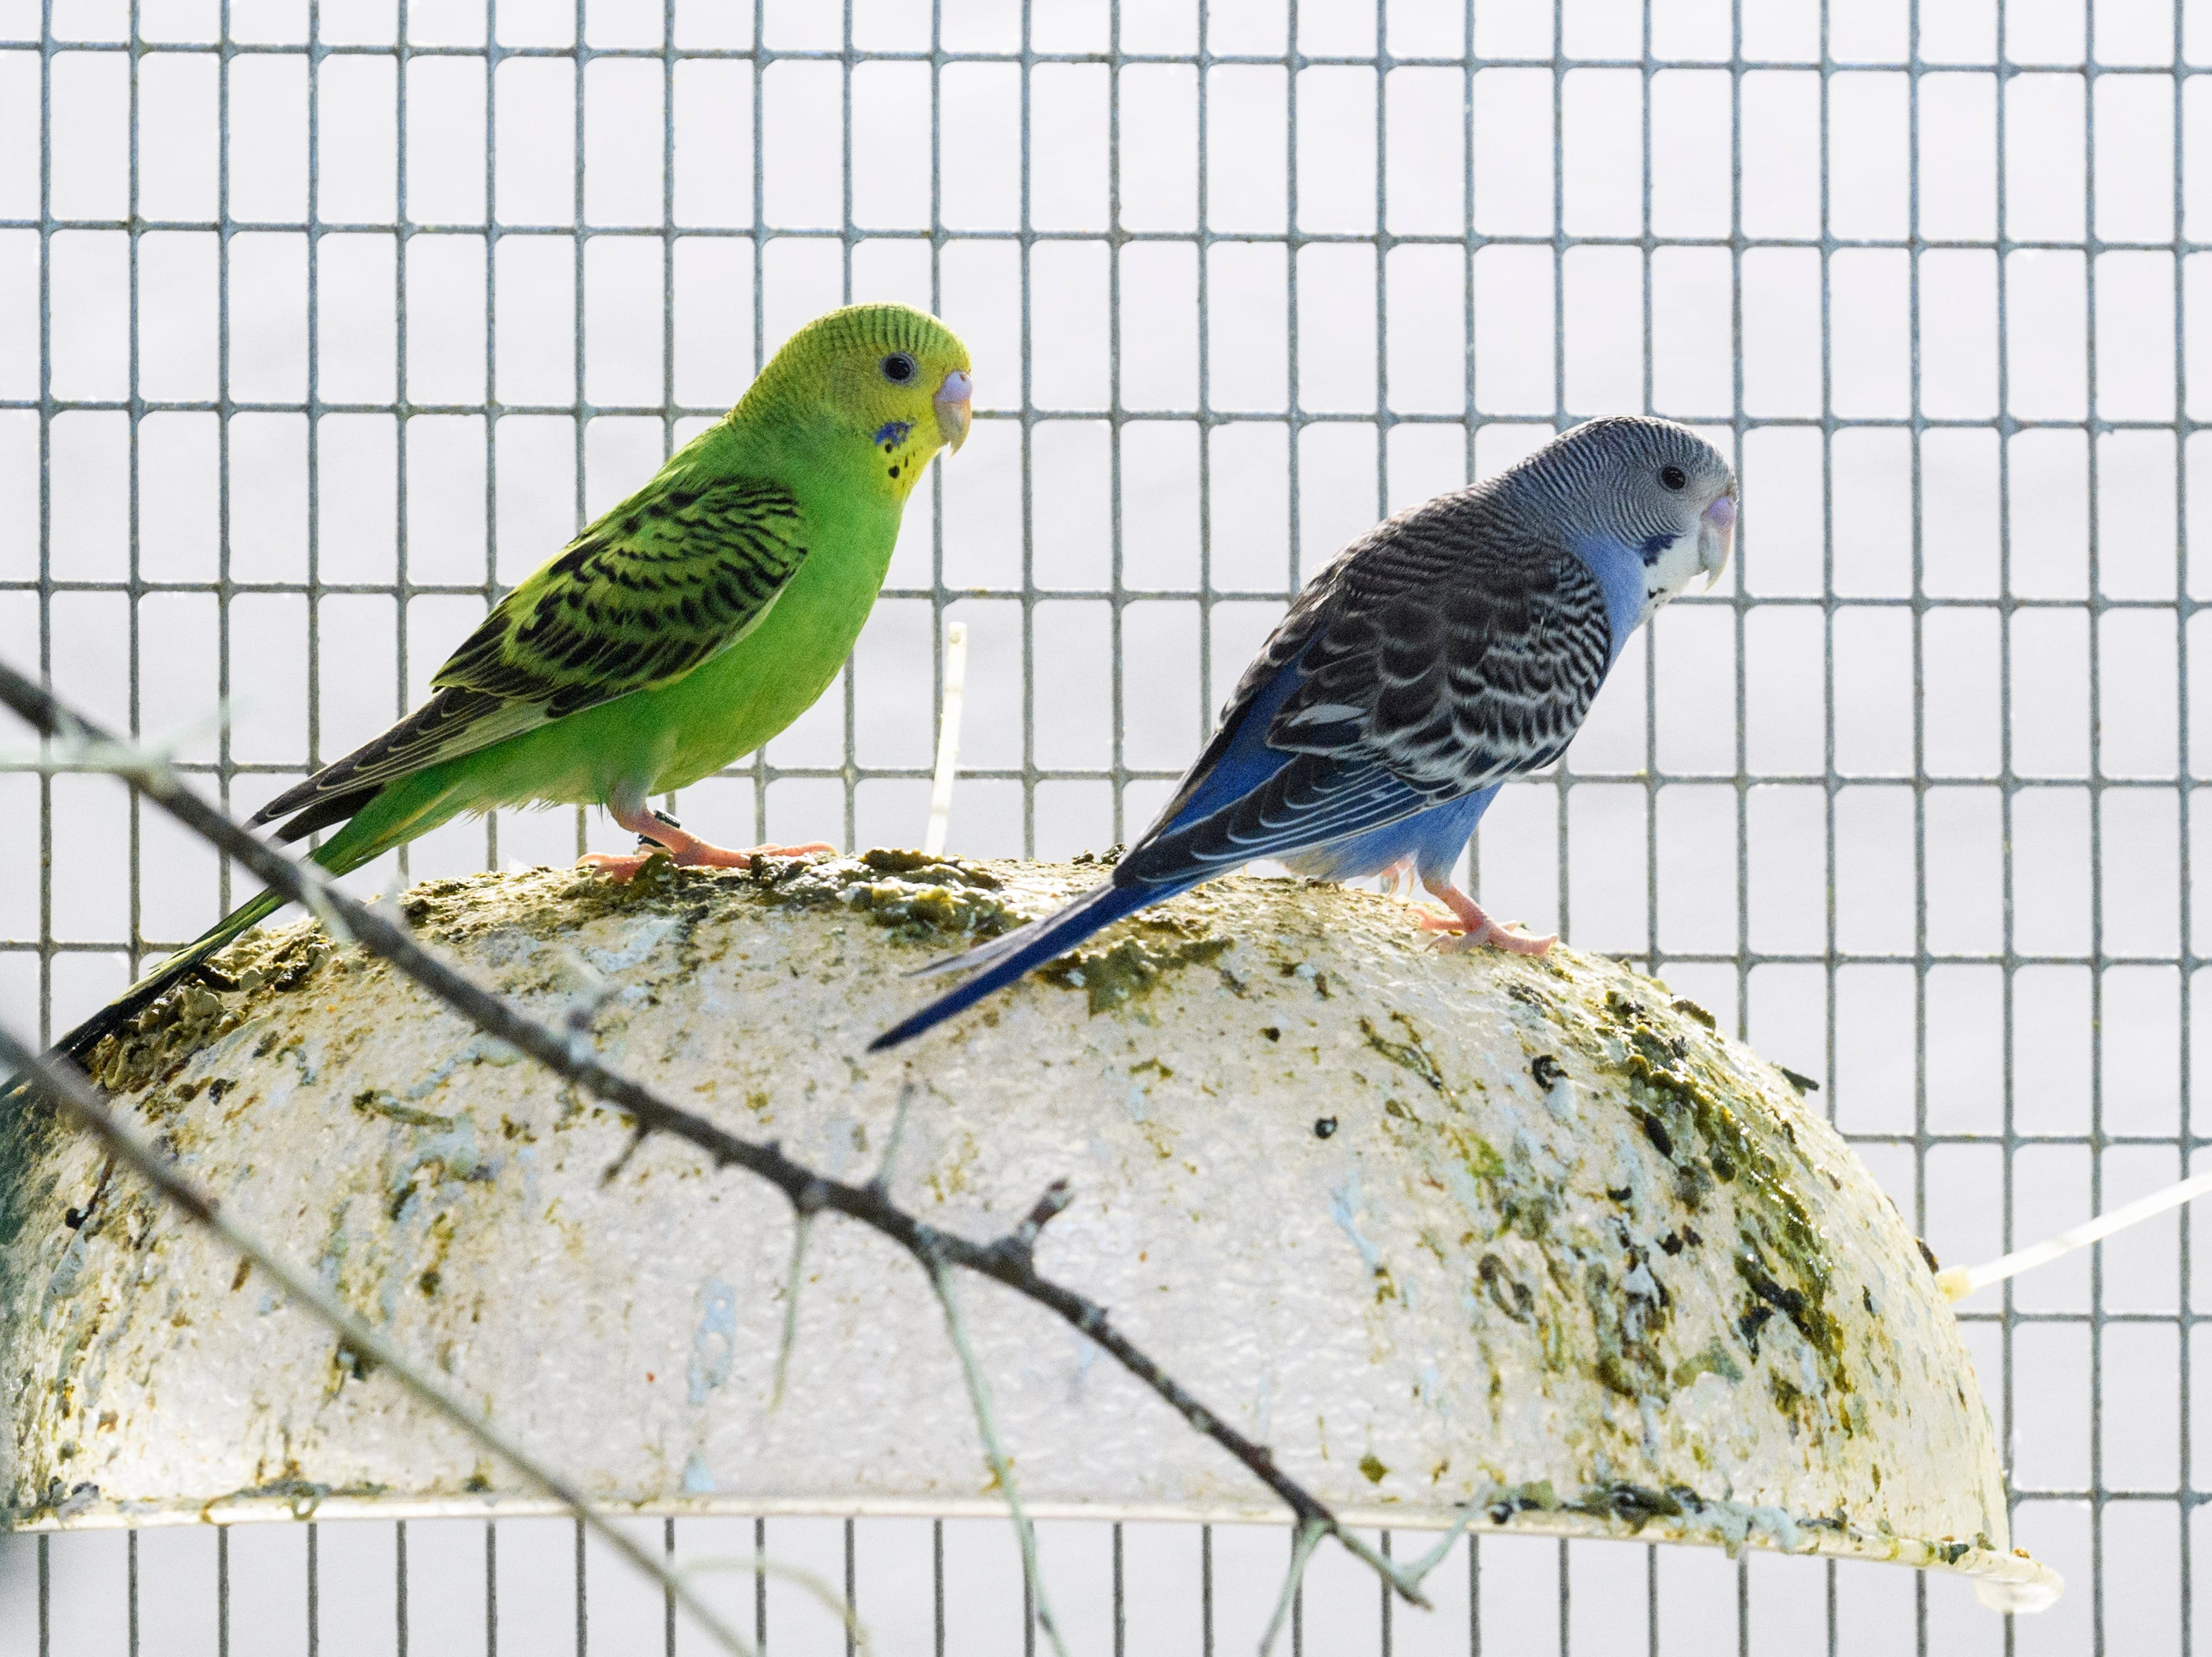 Two budgies, also known as parakeets, relax after eating a mid-morning breakfast at Mesker Park Zoo in Evansville, Ind., Thursday, May 2, 2019. A new outdoor Budgie atrium will open to the public on May 17.